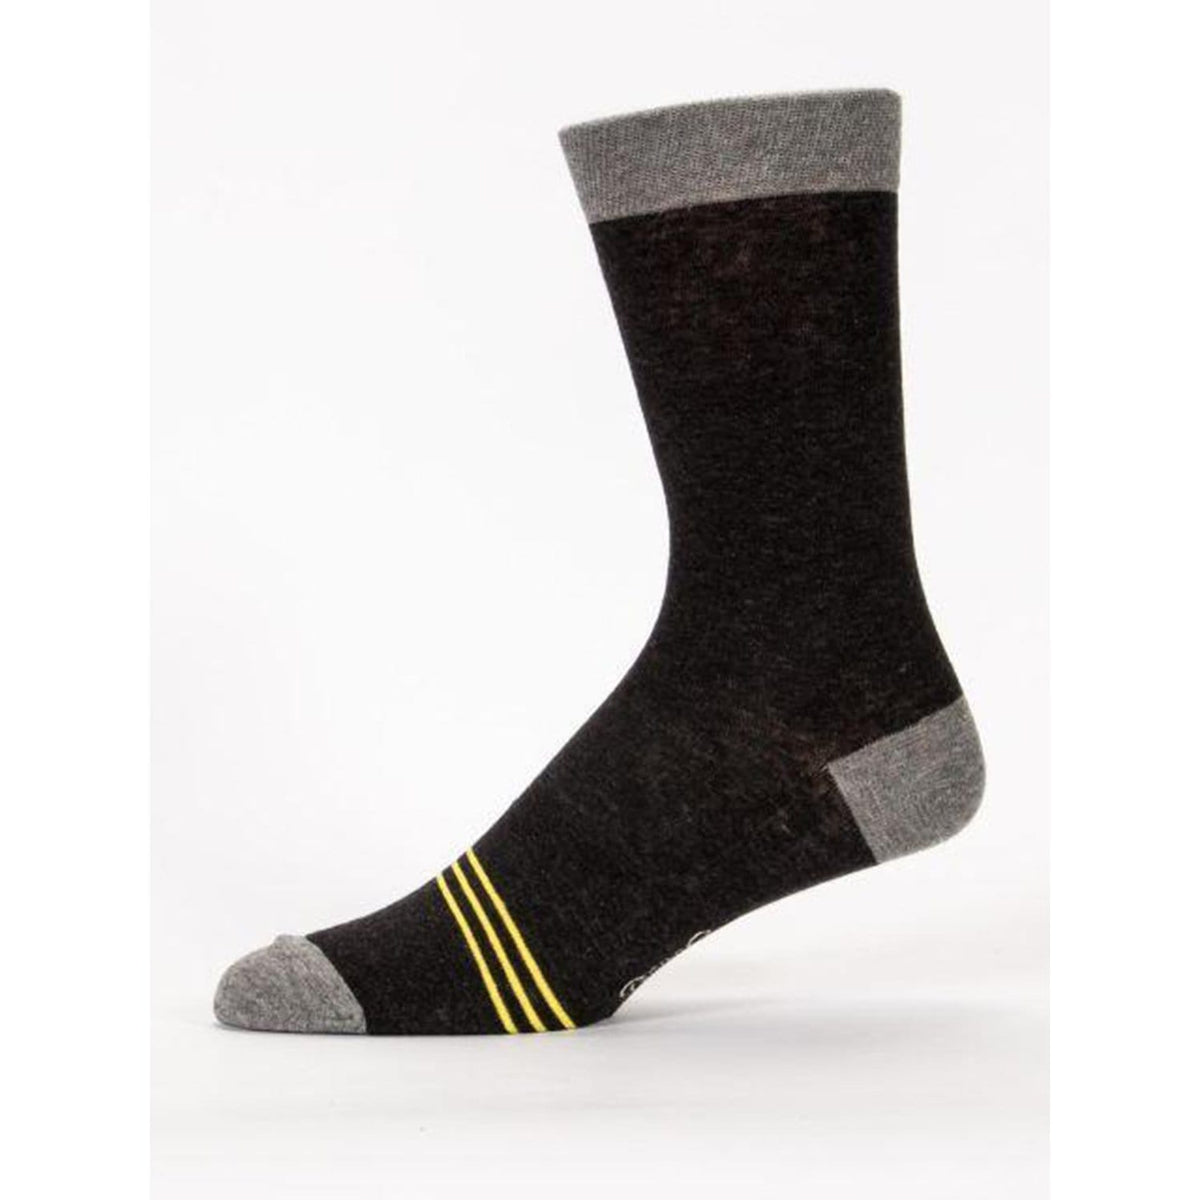 SELECTIVE HEARING SPECIALIST SOCKS - CREW SOCKS FOR MEN